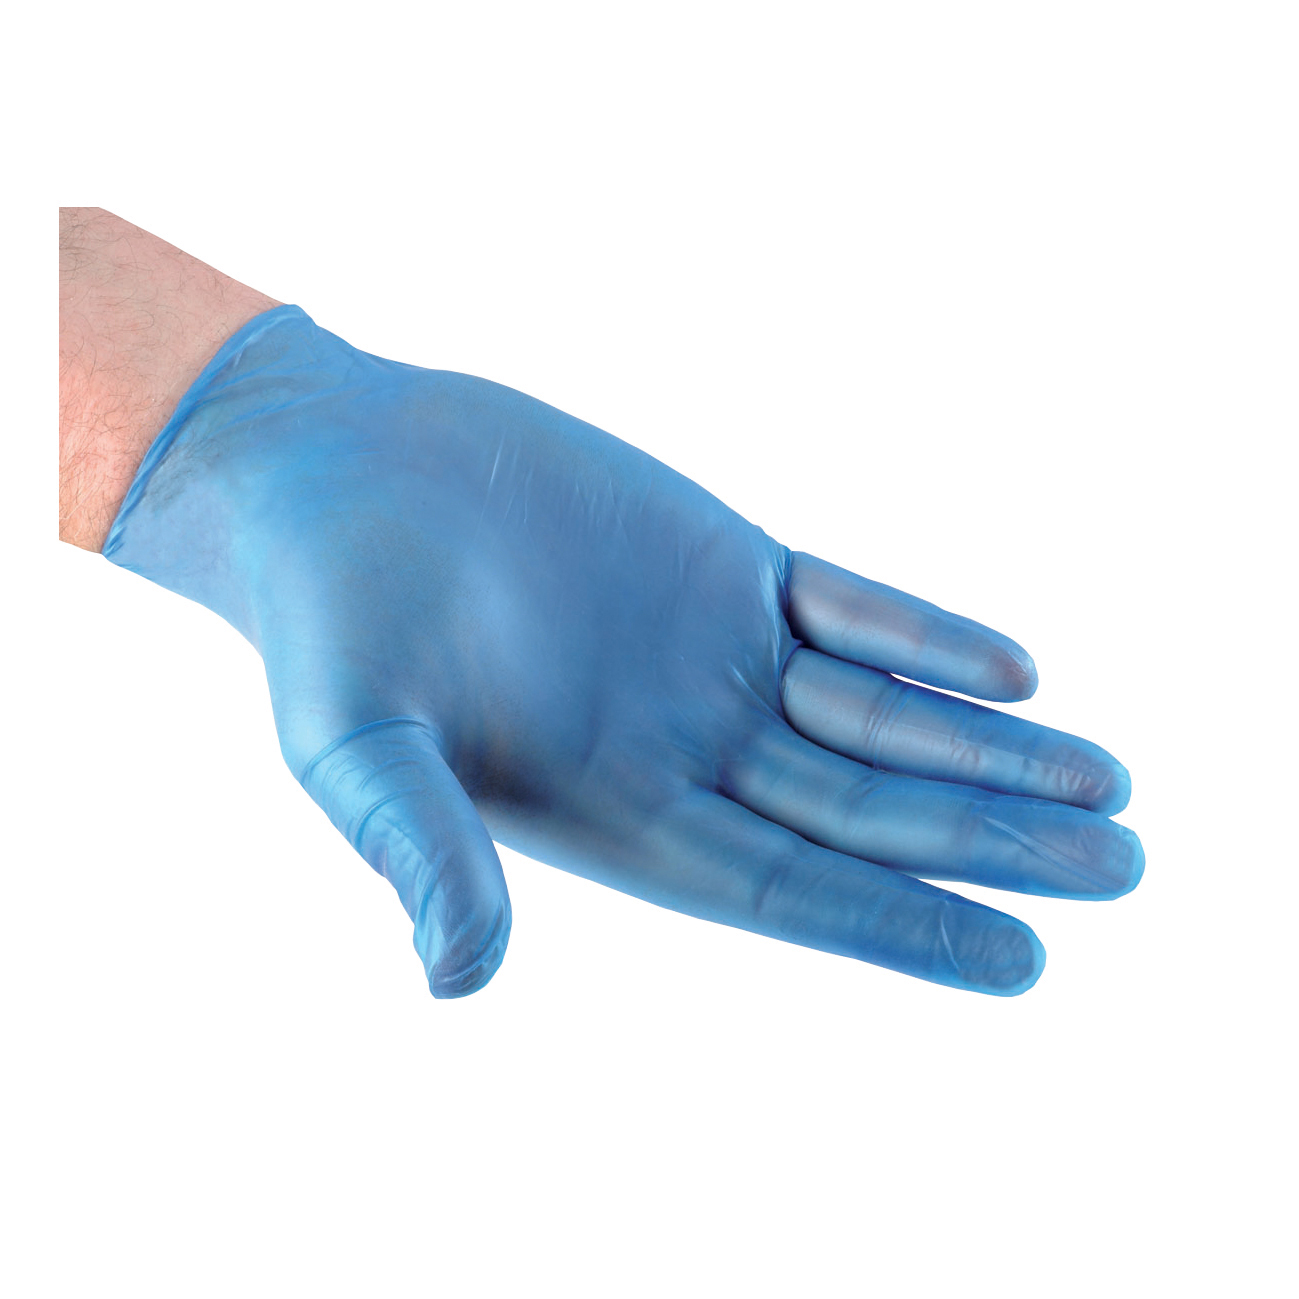 Disposable Gloves, Sz L, PK100